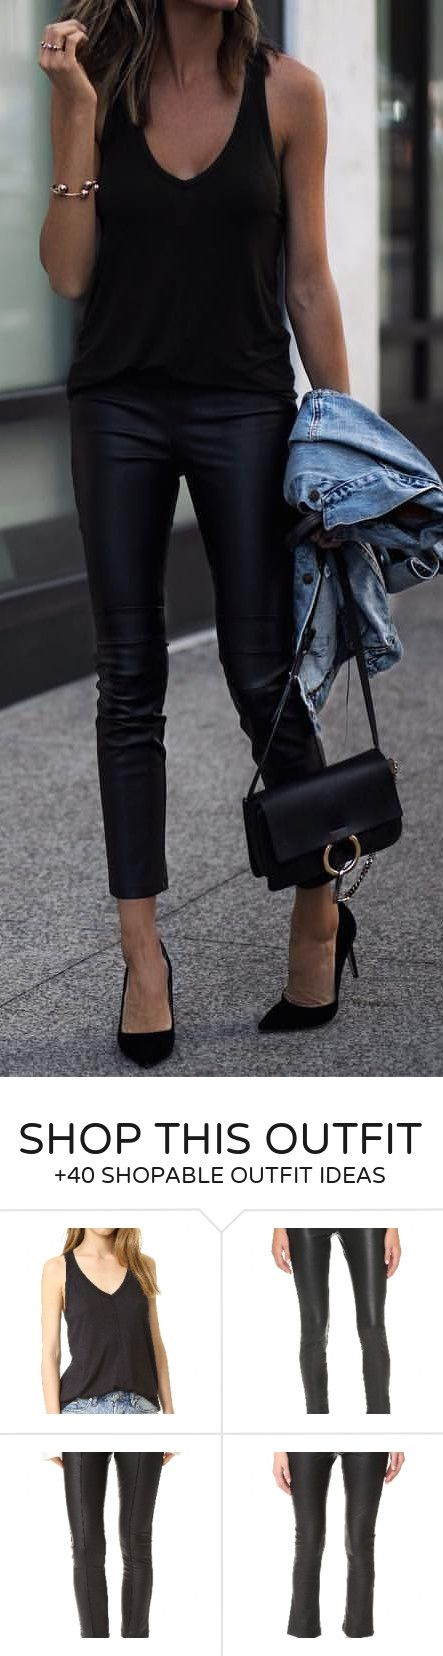 #summer #outfits  Black Tank   Black Leather Skinny Pants   Black Pumps